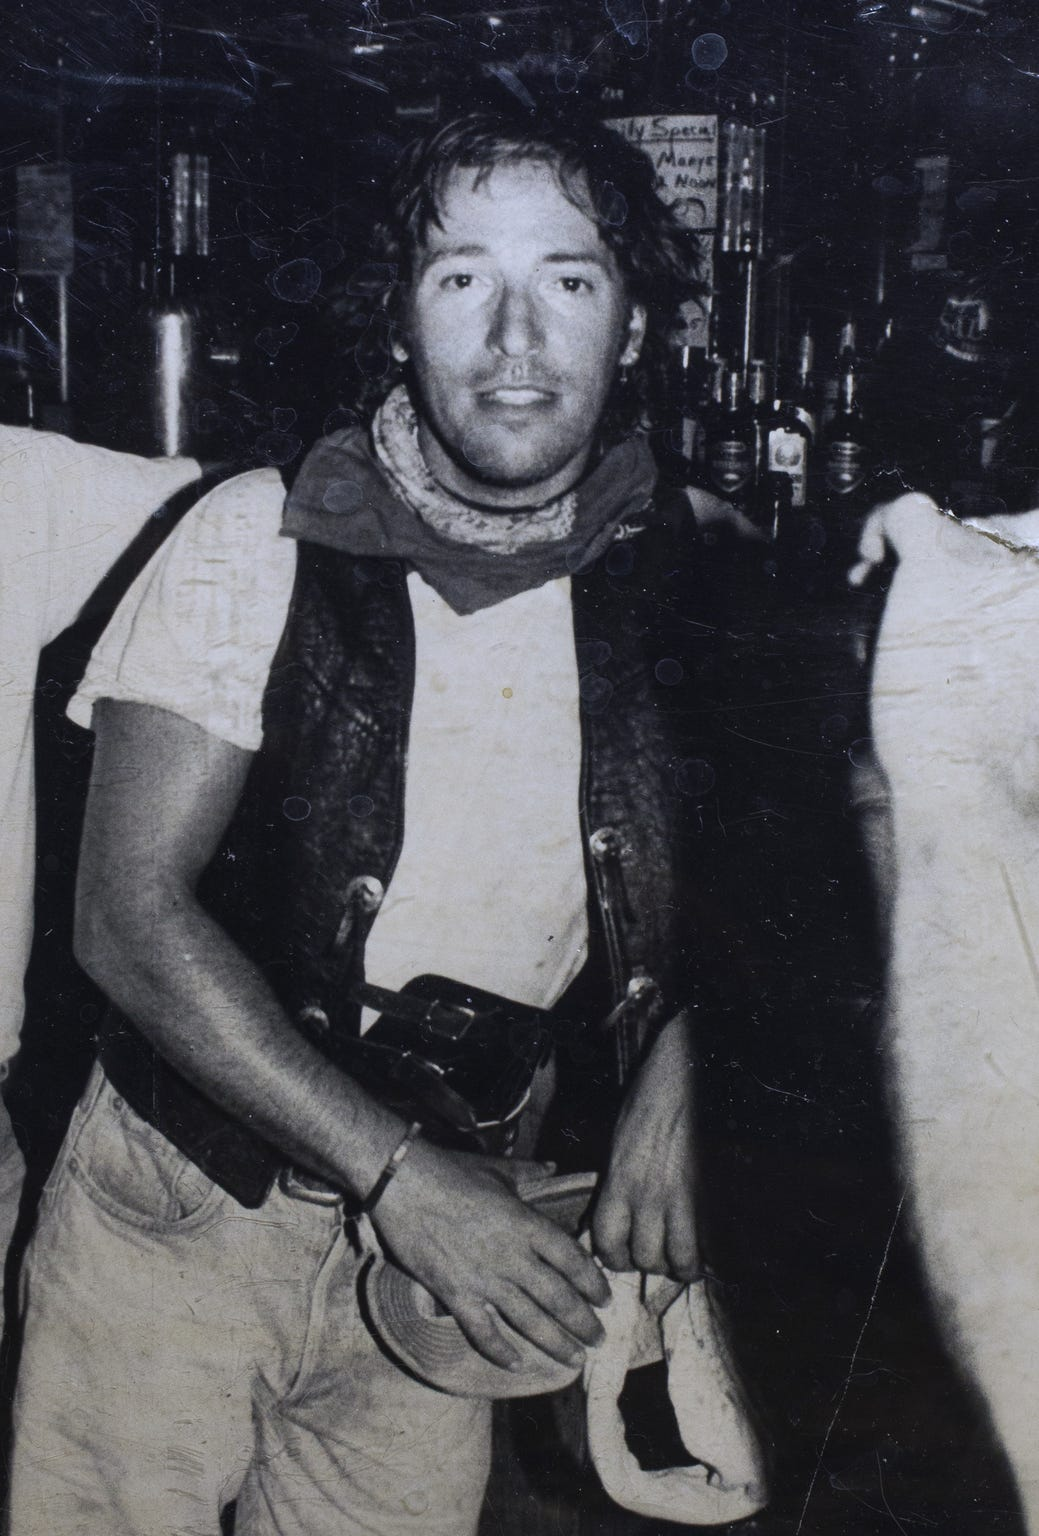 Bruce Springsteen ended up doing an impromptu performance after he walked into Matt's Saloon on Whiskey Row in Prescott on Sept. 29, 1989.